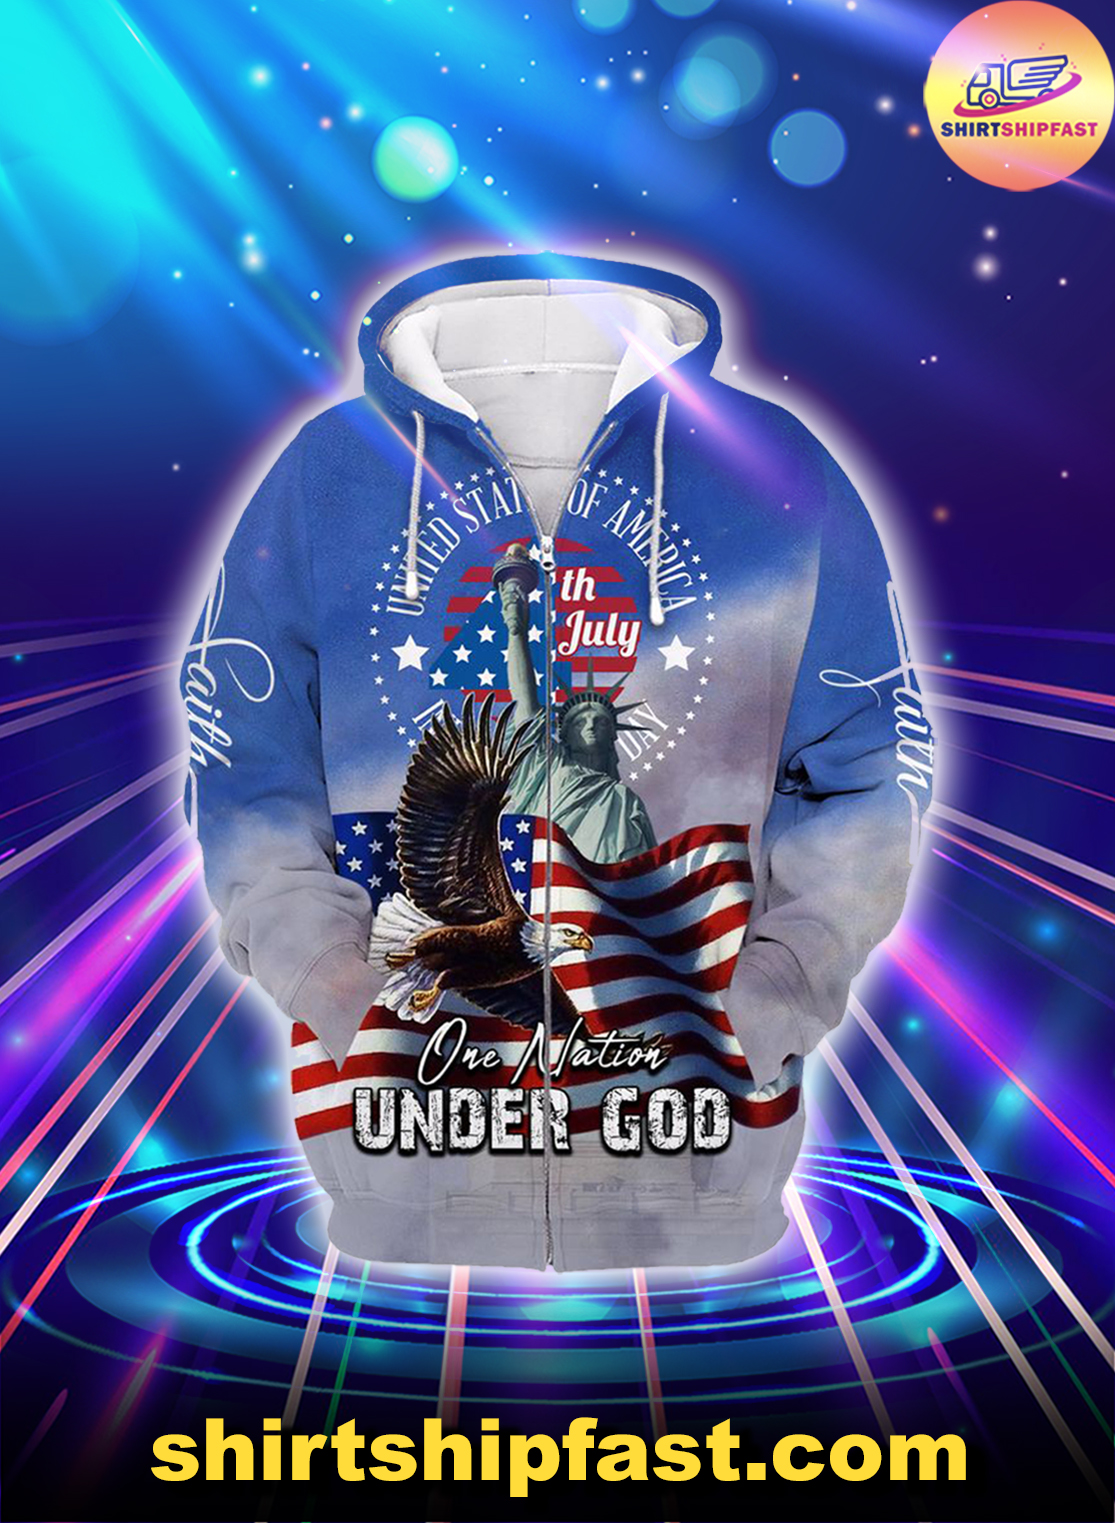 One nation under god united states of america 4th july zip hoodie